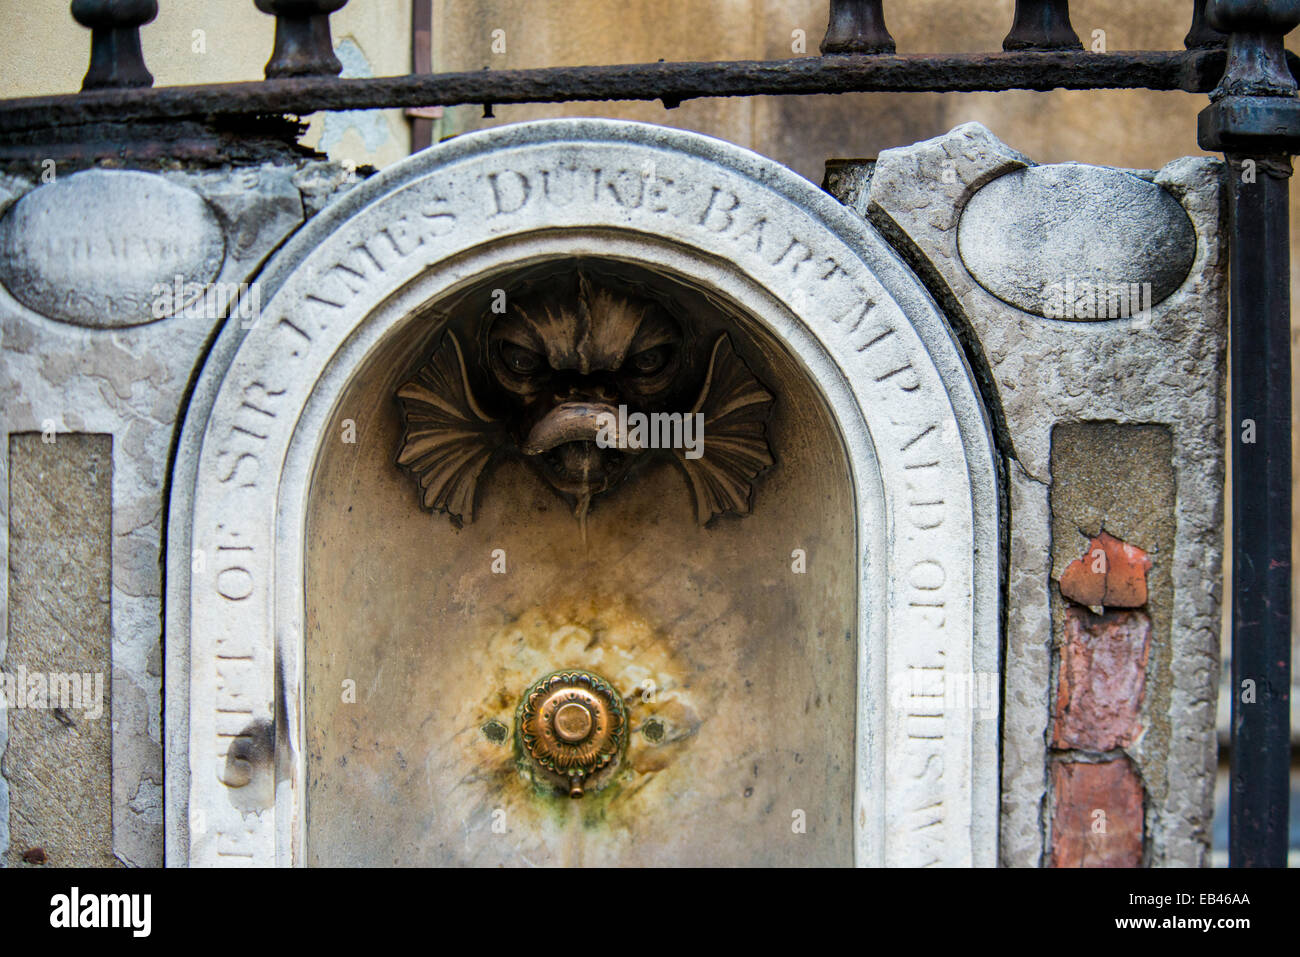 Water fountain, St Dunstan's in the West, 1848. Inscription: The gift of Sir James Duke Bart MP, ald. of this - Stock Image